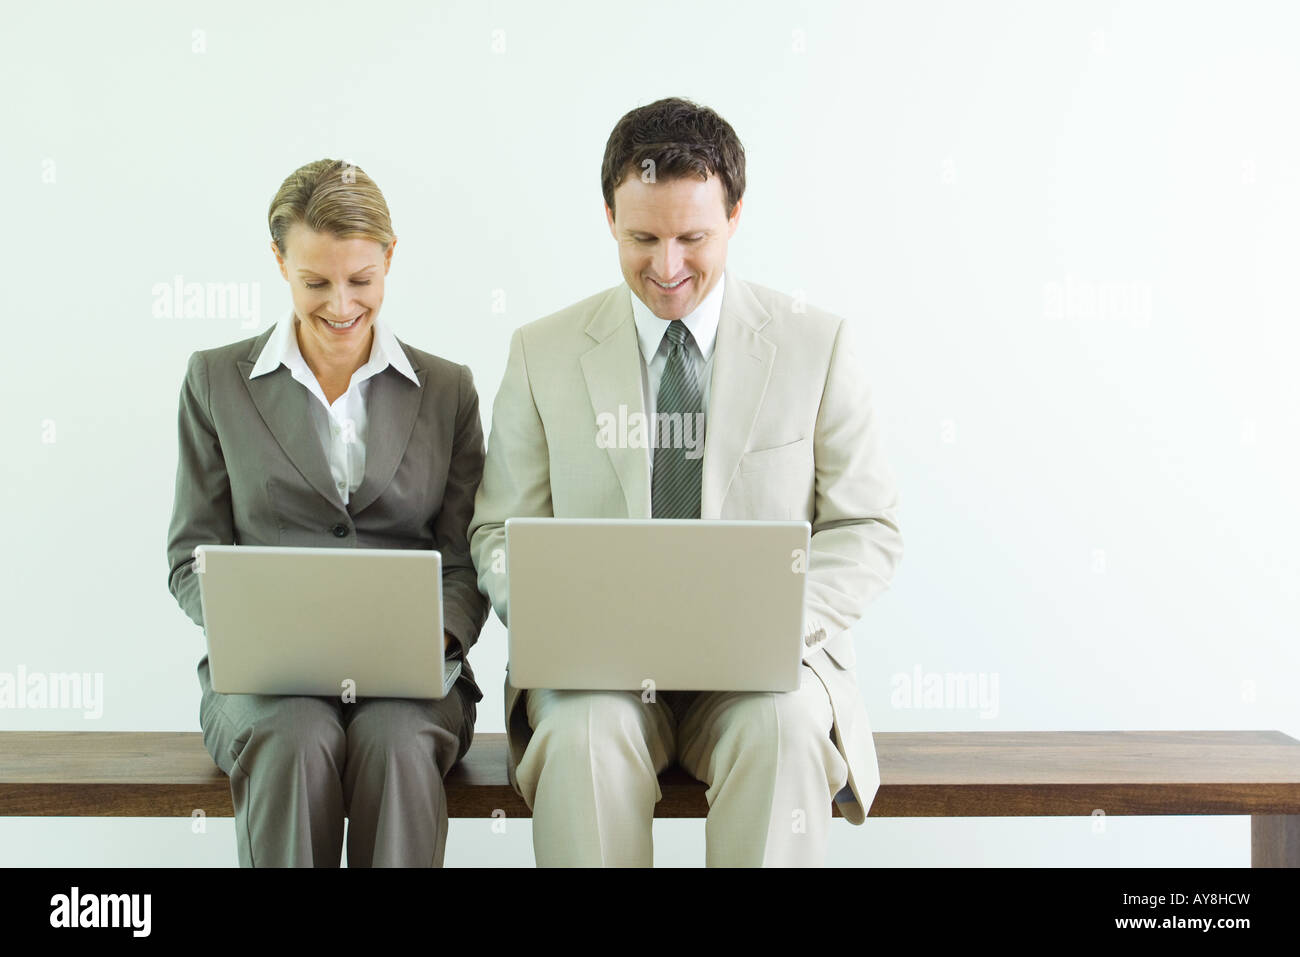 Male and female business associates sitting side by side, both using laptop computers - Stock Image